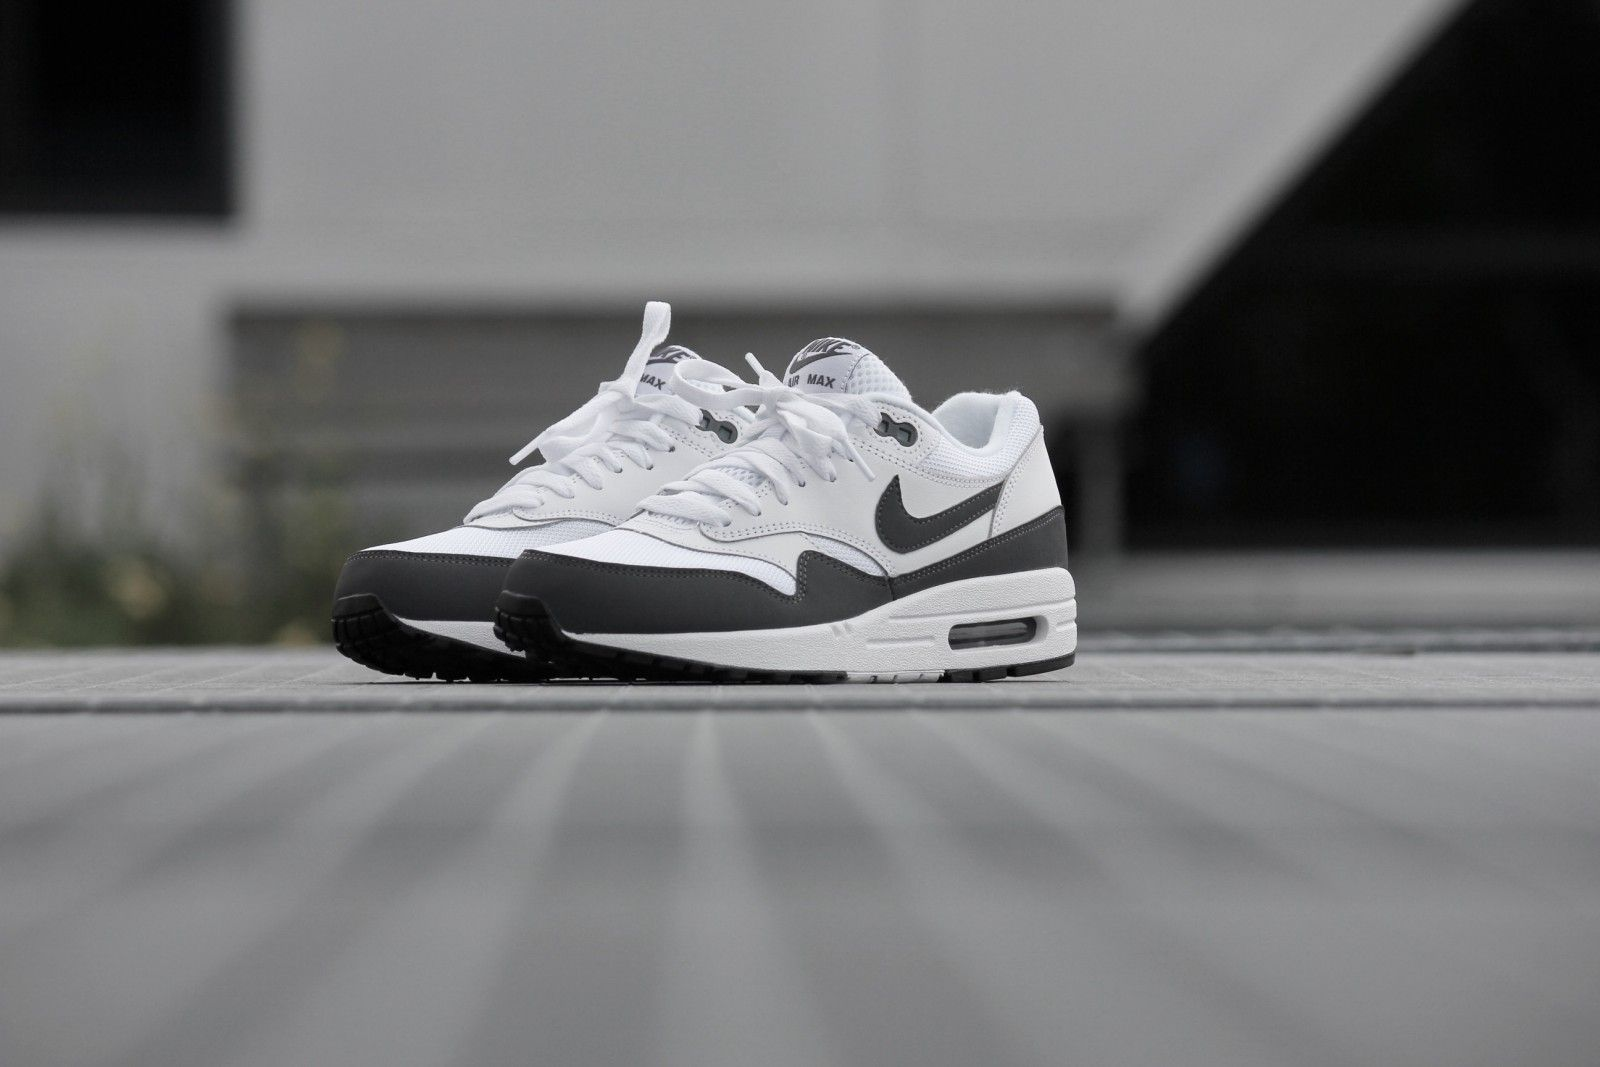 finest selection bac71 bbfed Nike Air Max 1 Essential White  Dark Grey-Black - 537383-126